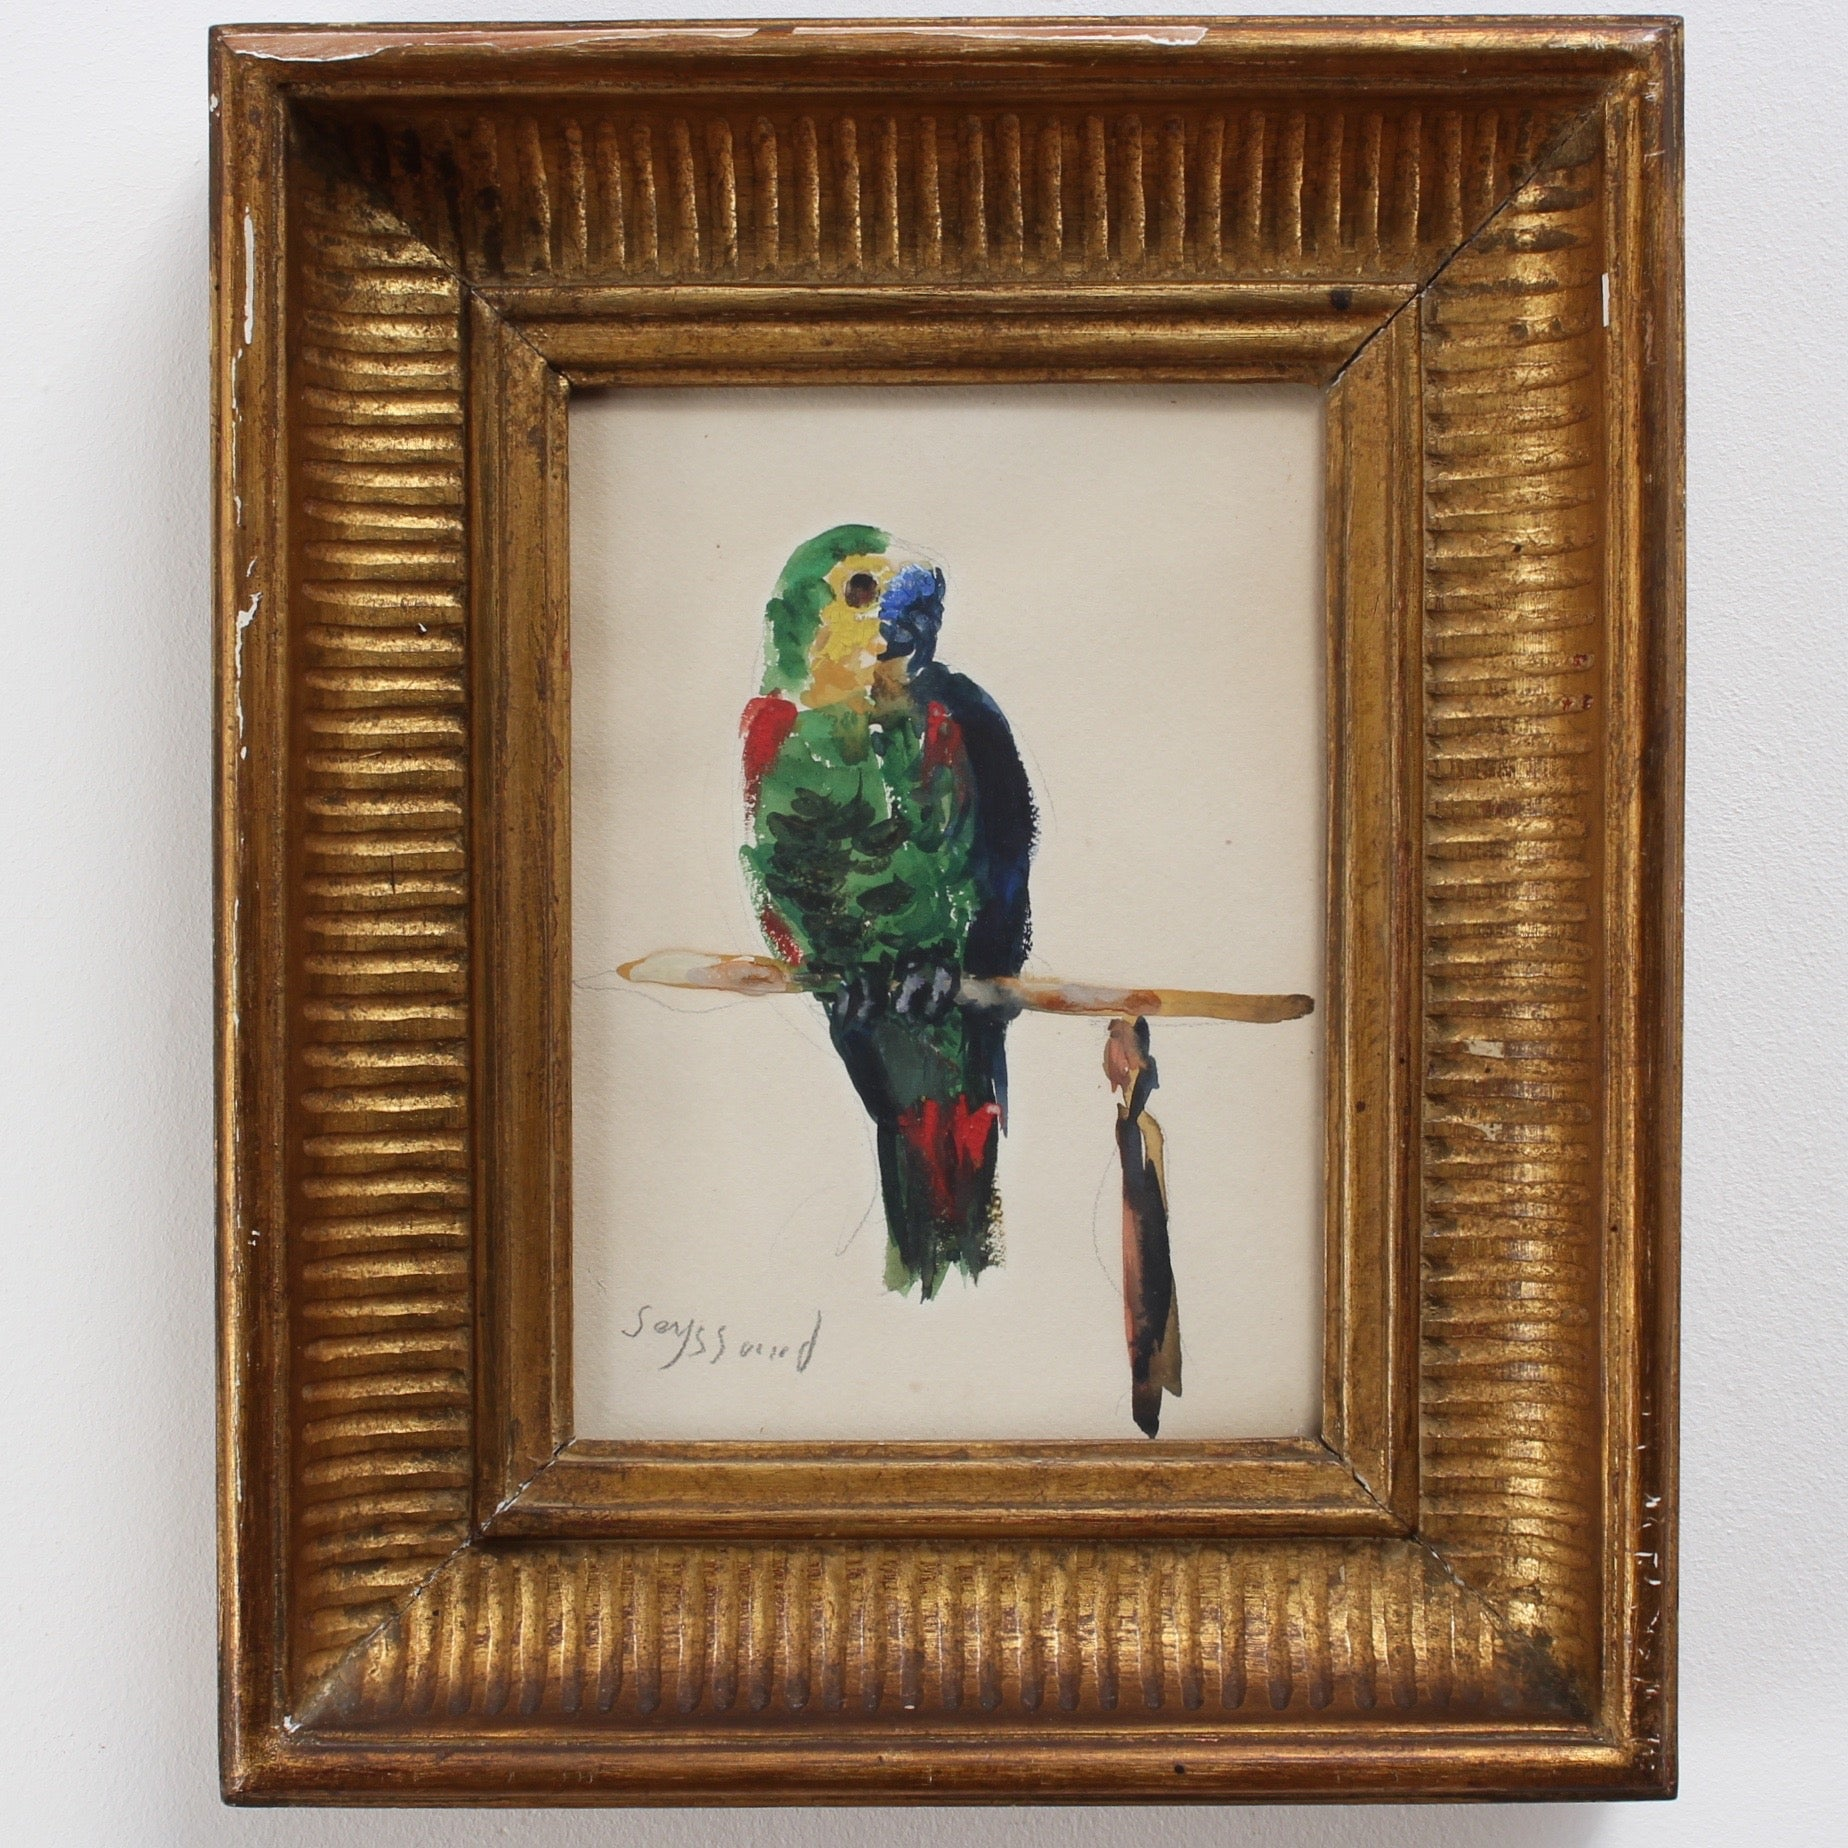 'The Parakeet' by René Seyssaud (circa 1930s)